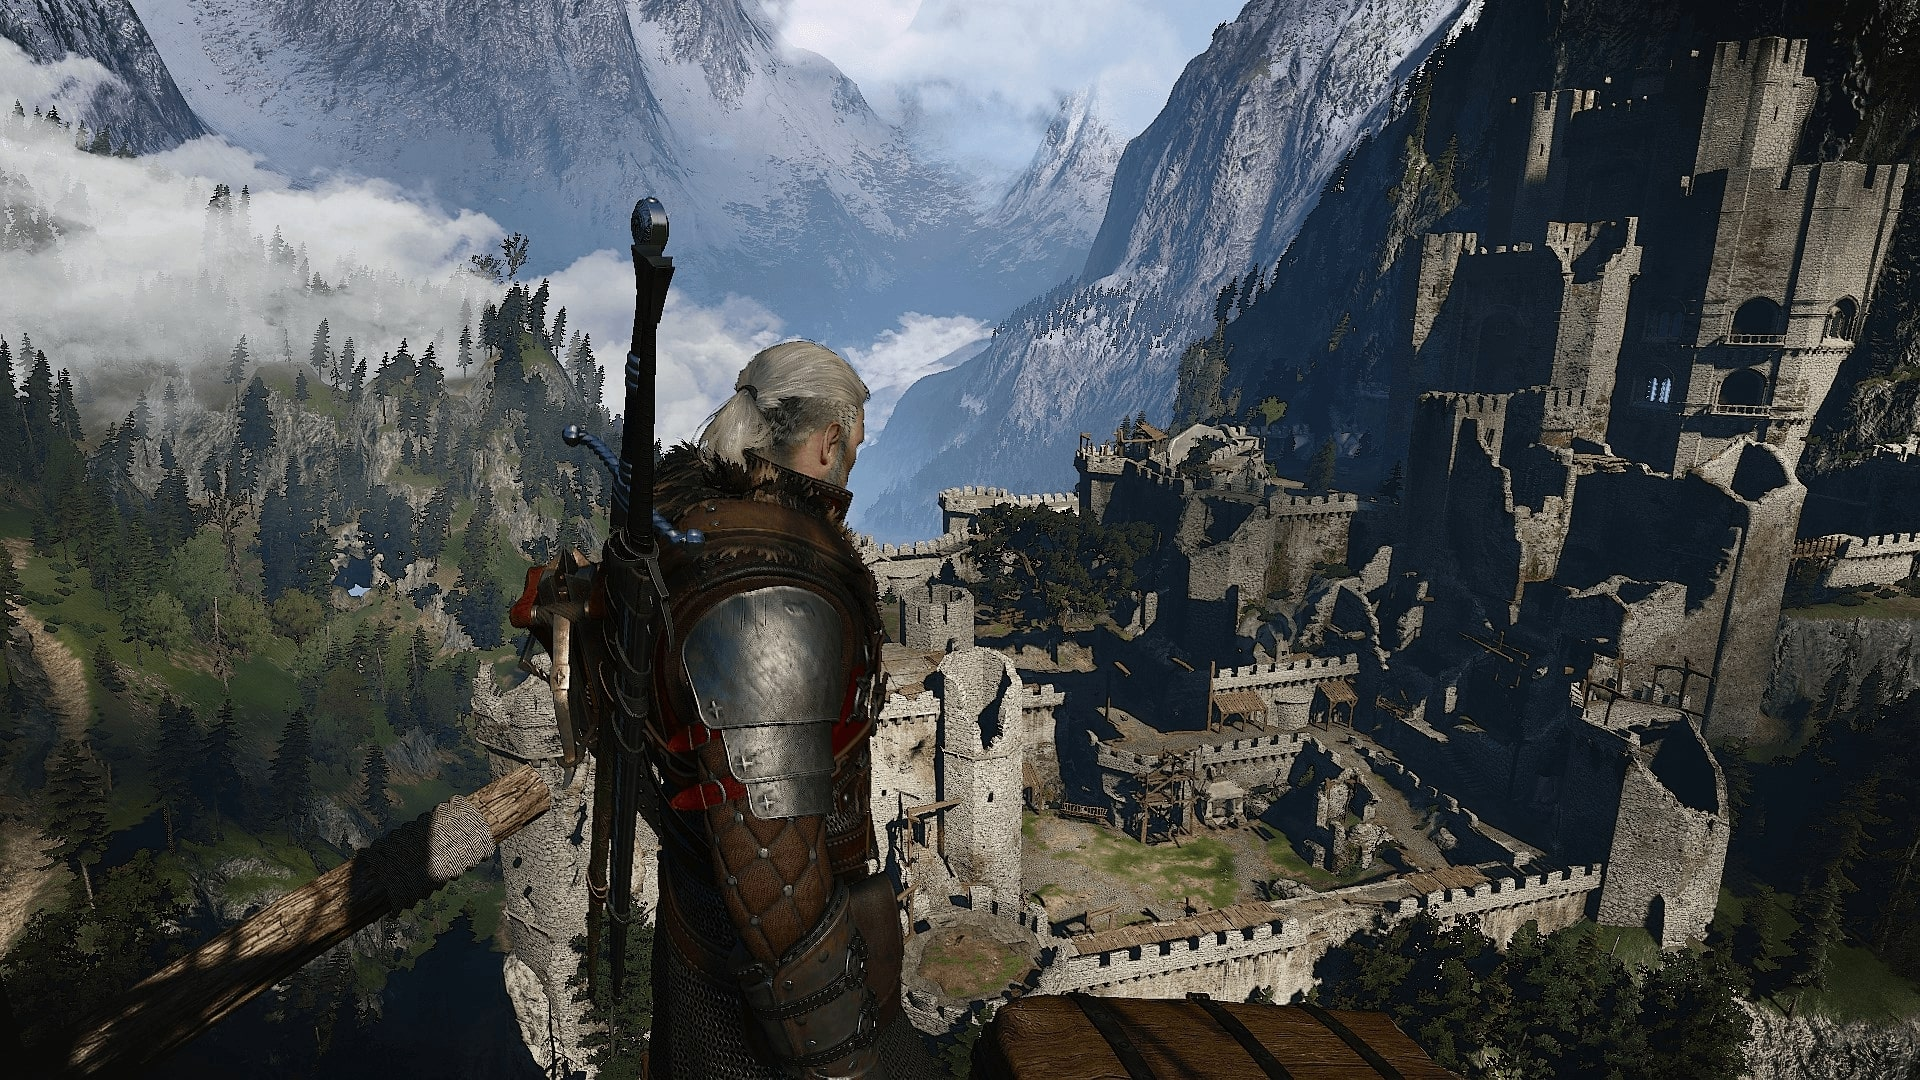 The creators of the Witcher 3 placed small activities around the game world and marked them with questions on the map — so players could understand that something interesting was waiting for them